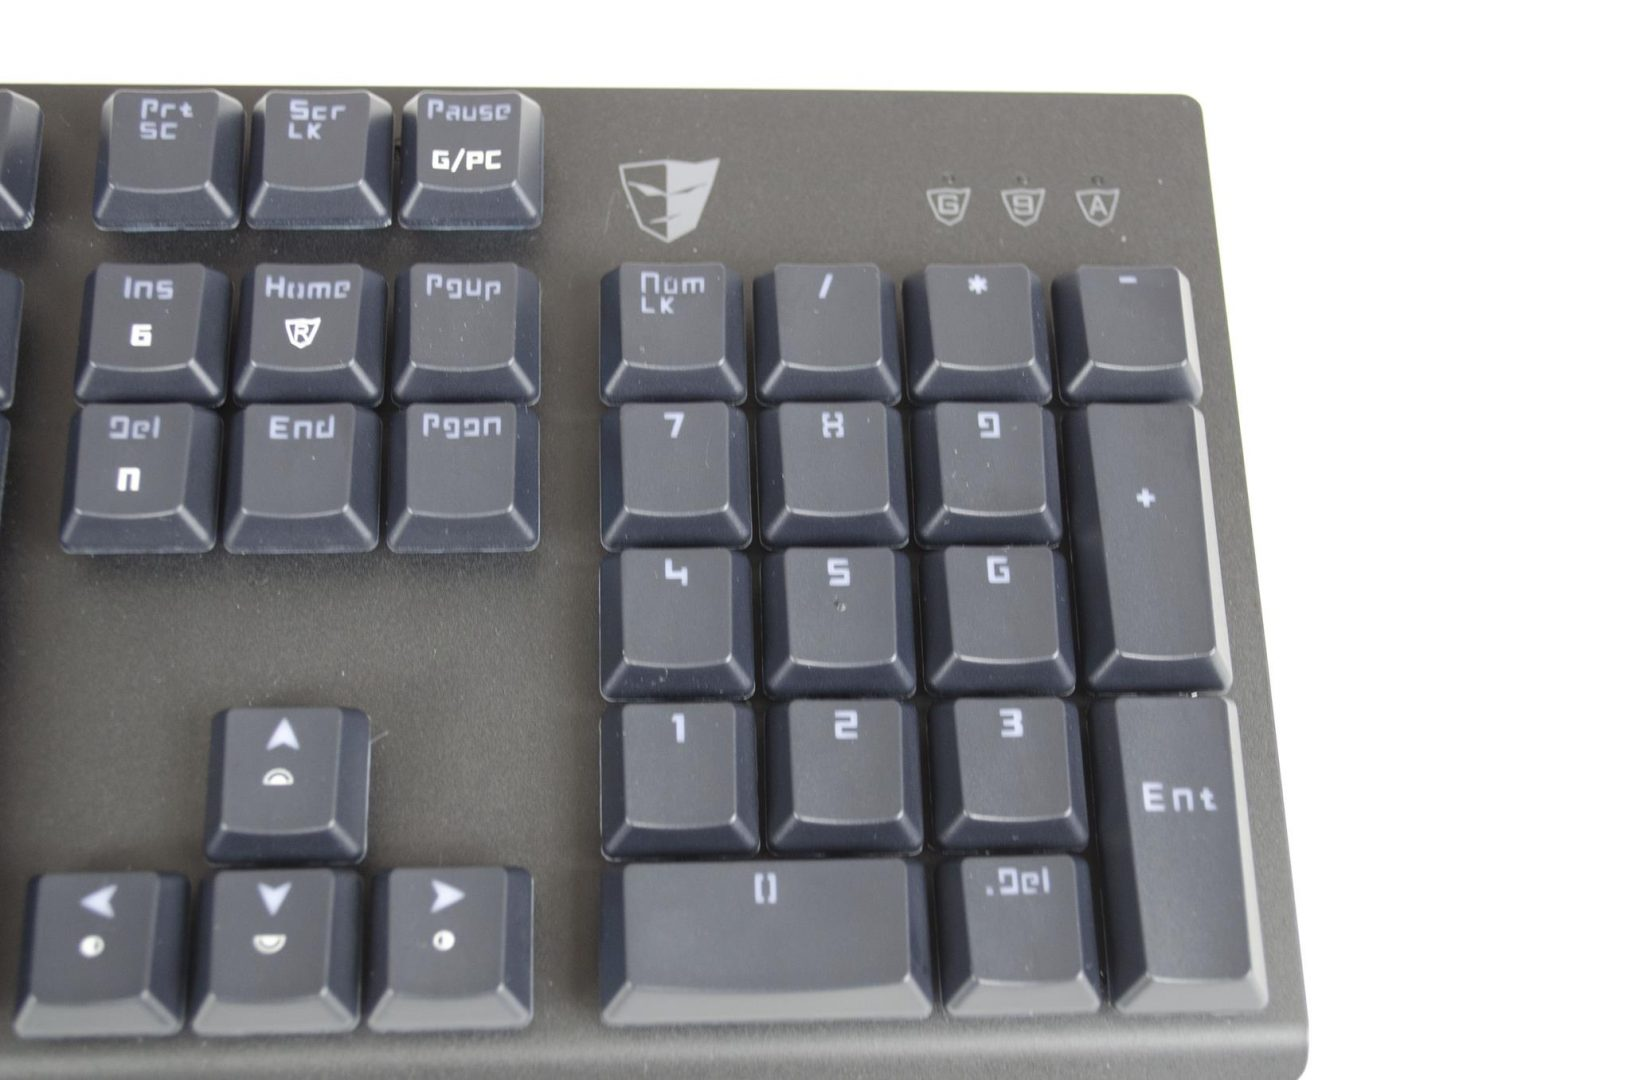 tesoro-gram-spectrum-rgm-gaming-mechanical-keyboard-review_12